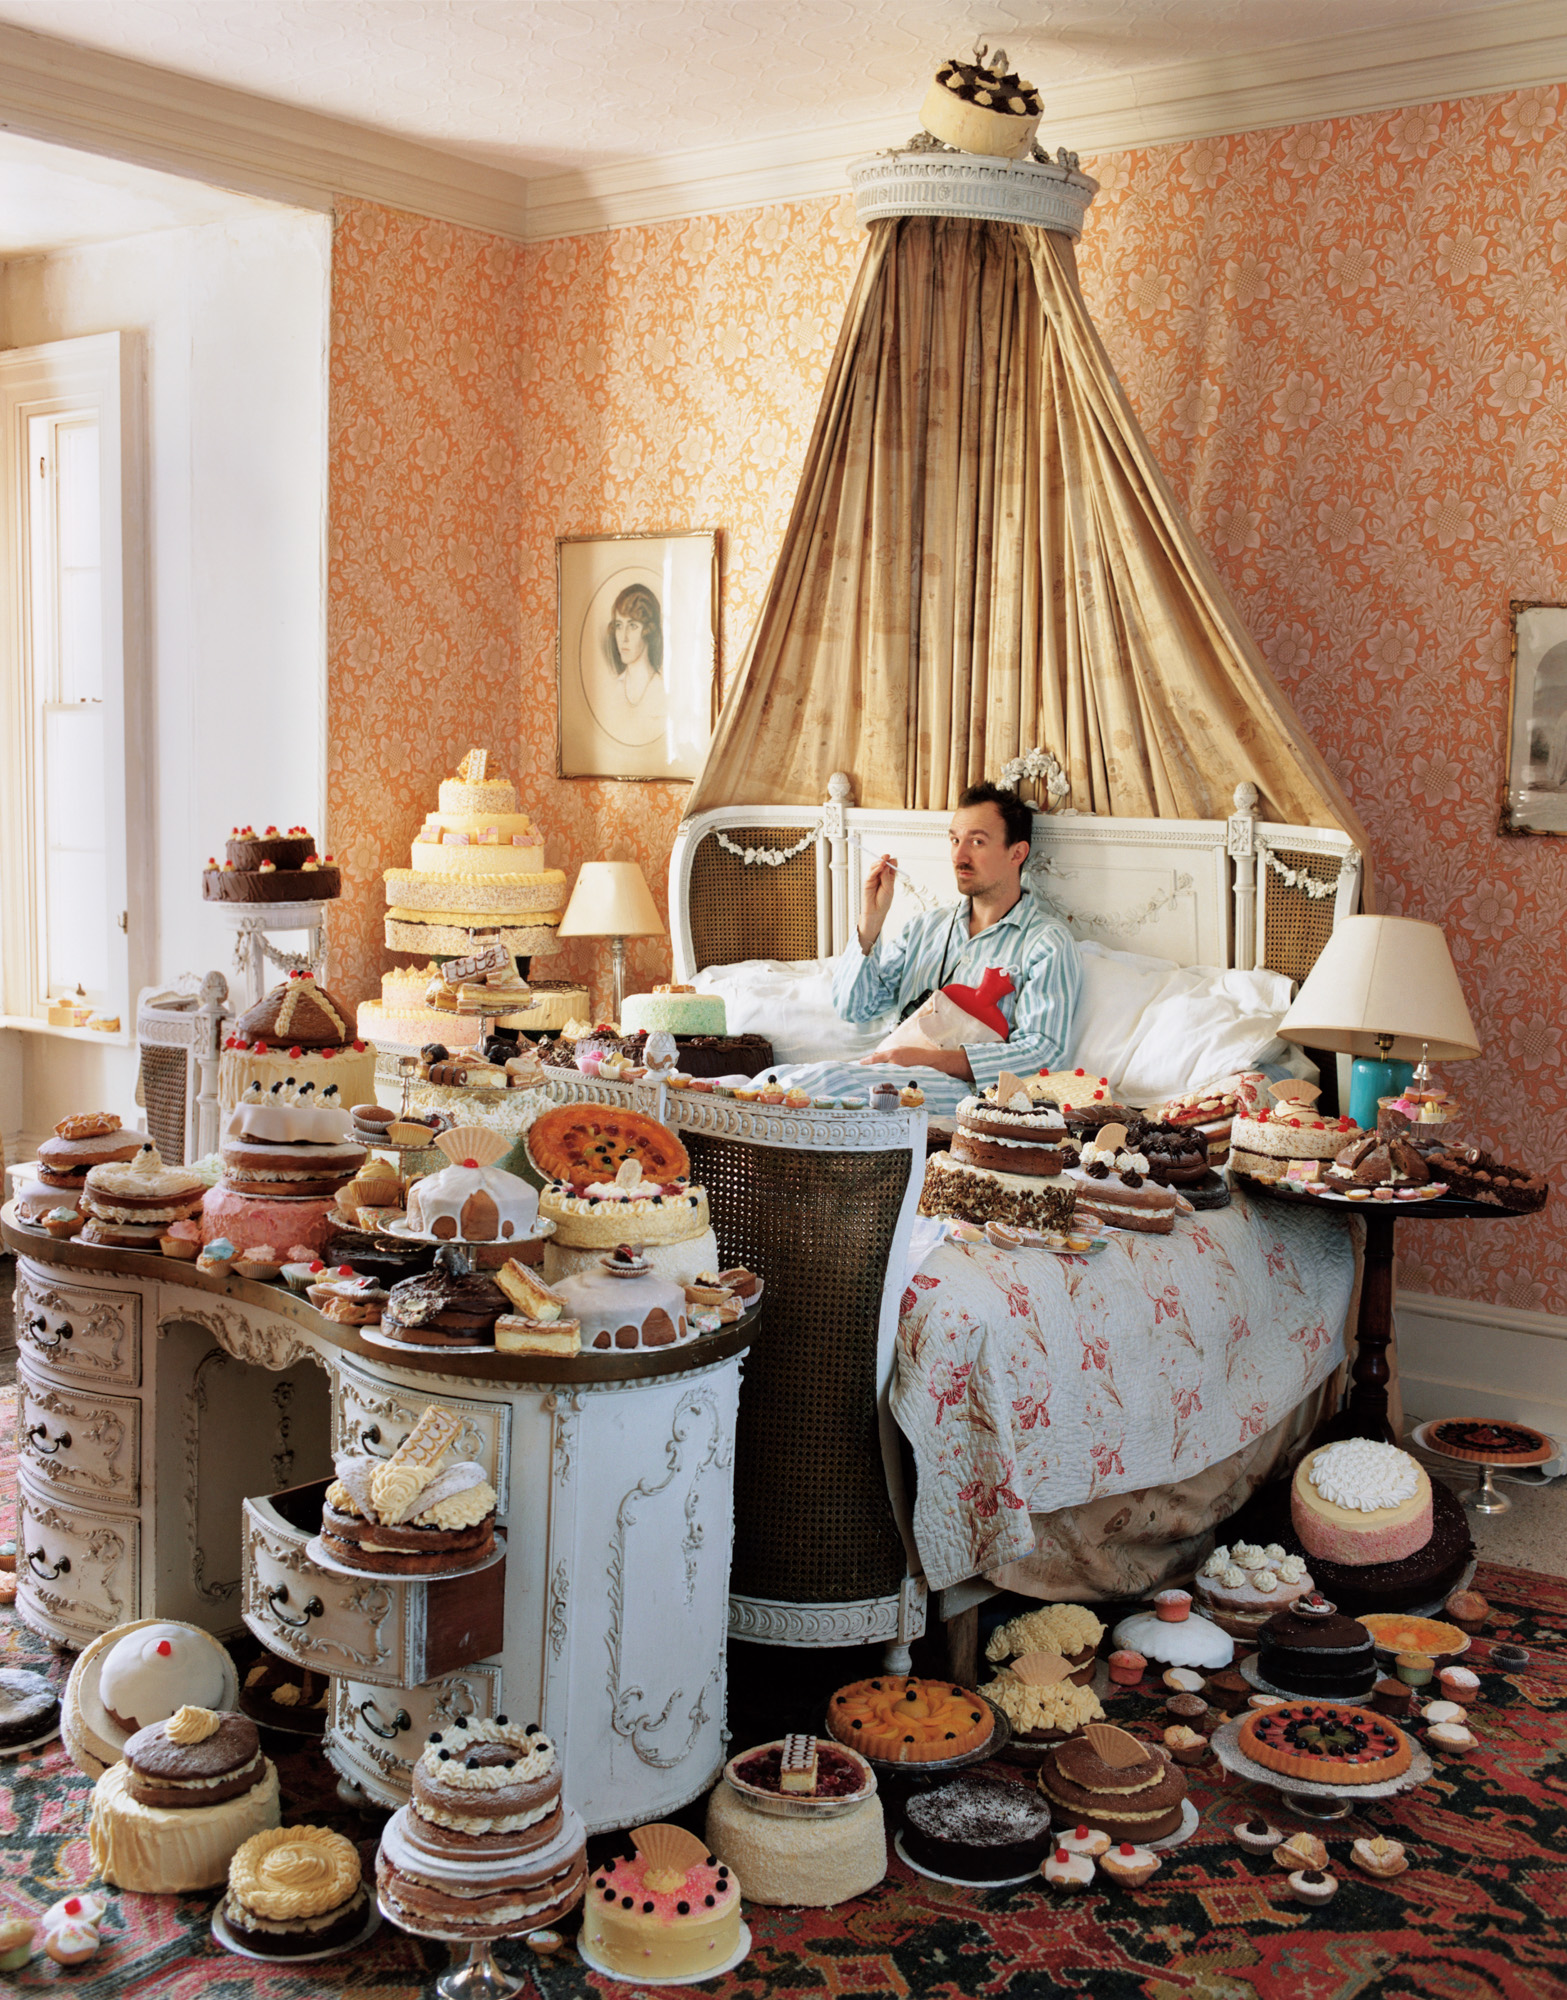 Tim Walker, Self-Portrait with Eighty Cakes, 2008; from Feast for the Eyes (Aperture, 2017) © Tim Walker